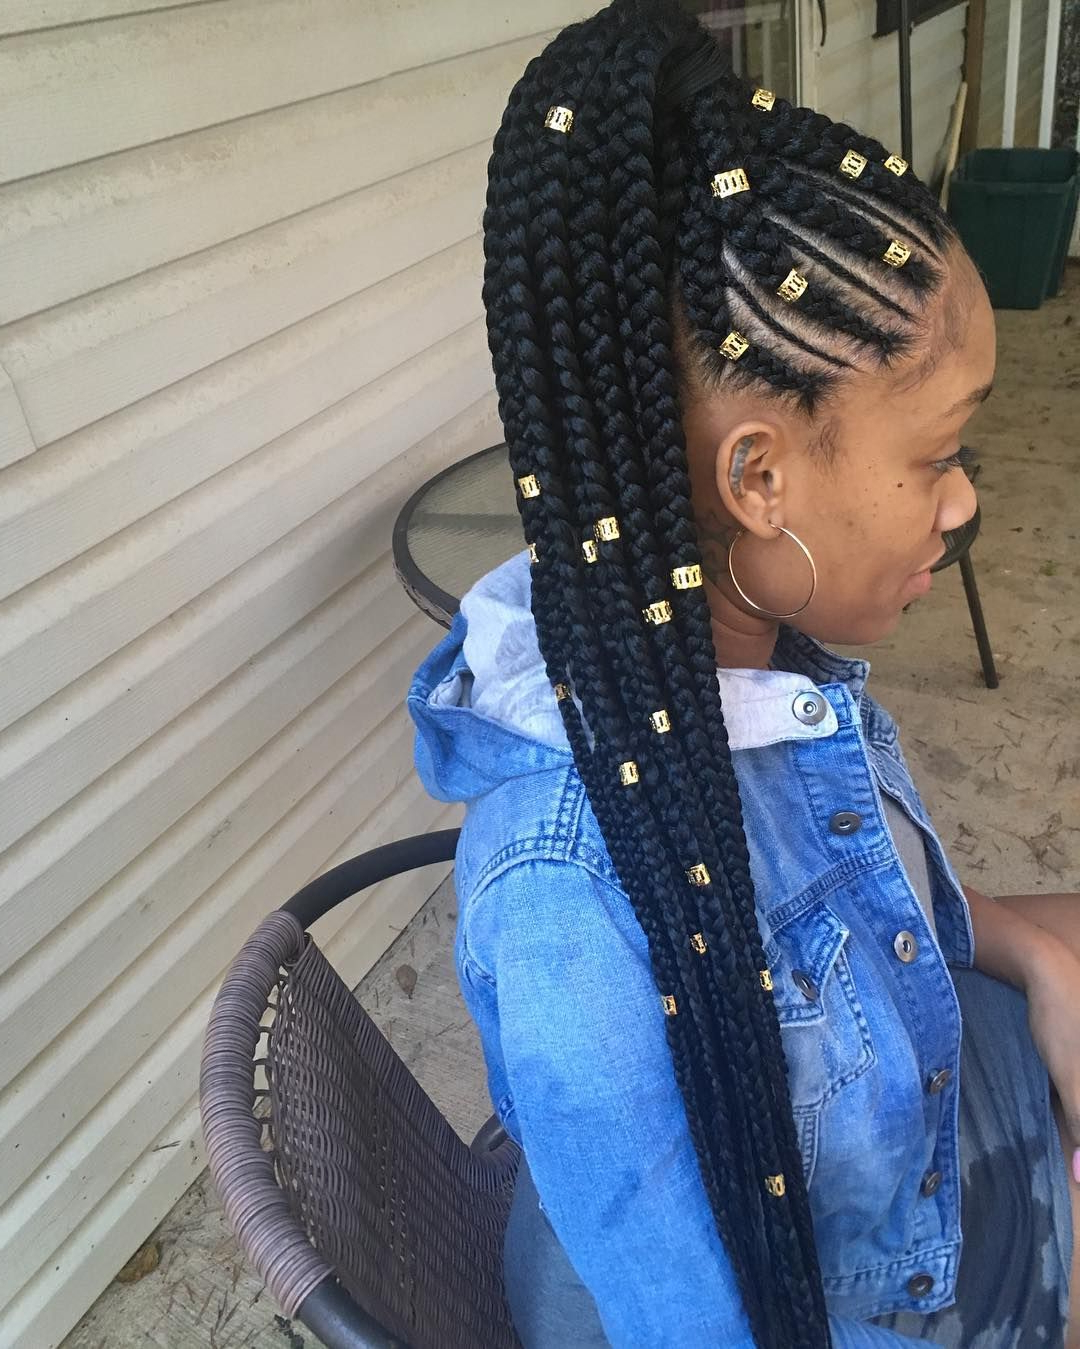 Awesome 30 Cornrow Hairstyles For Different Occasions – Get Your With Regard To Well Known Cornrow Braids Hairstyles (Gallery 11 of 20)